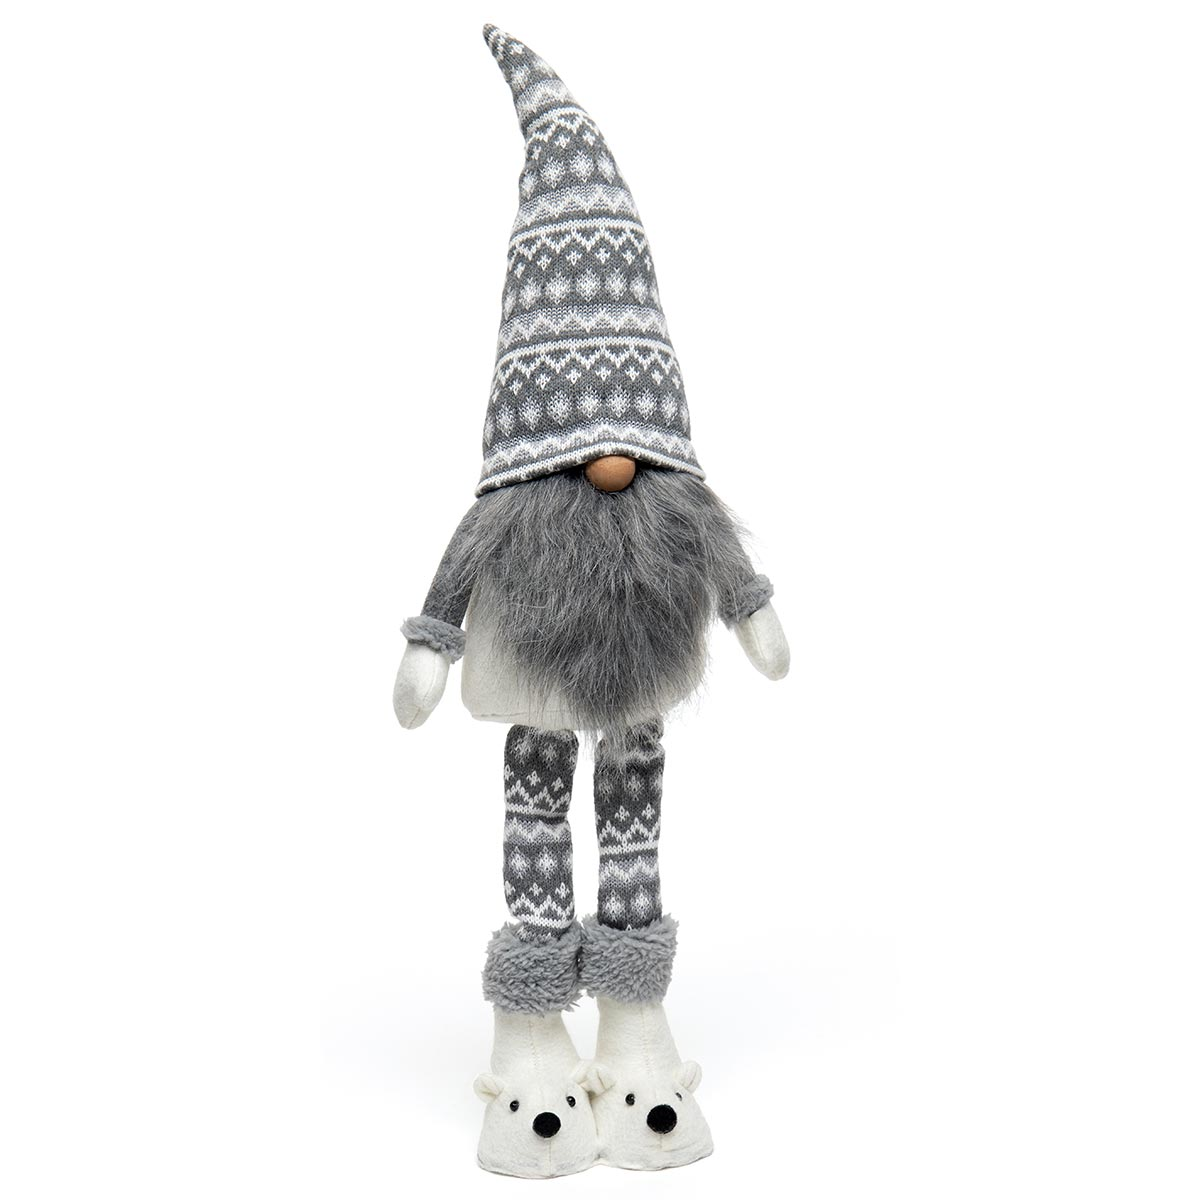 POLI BEAR STANDING GNOME GREY/WHITE WITH WIRED